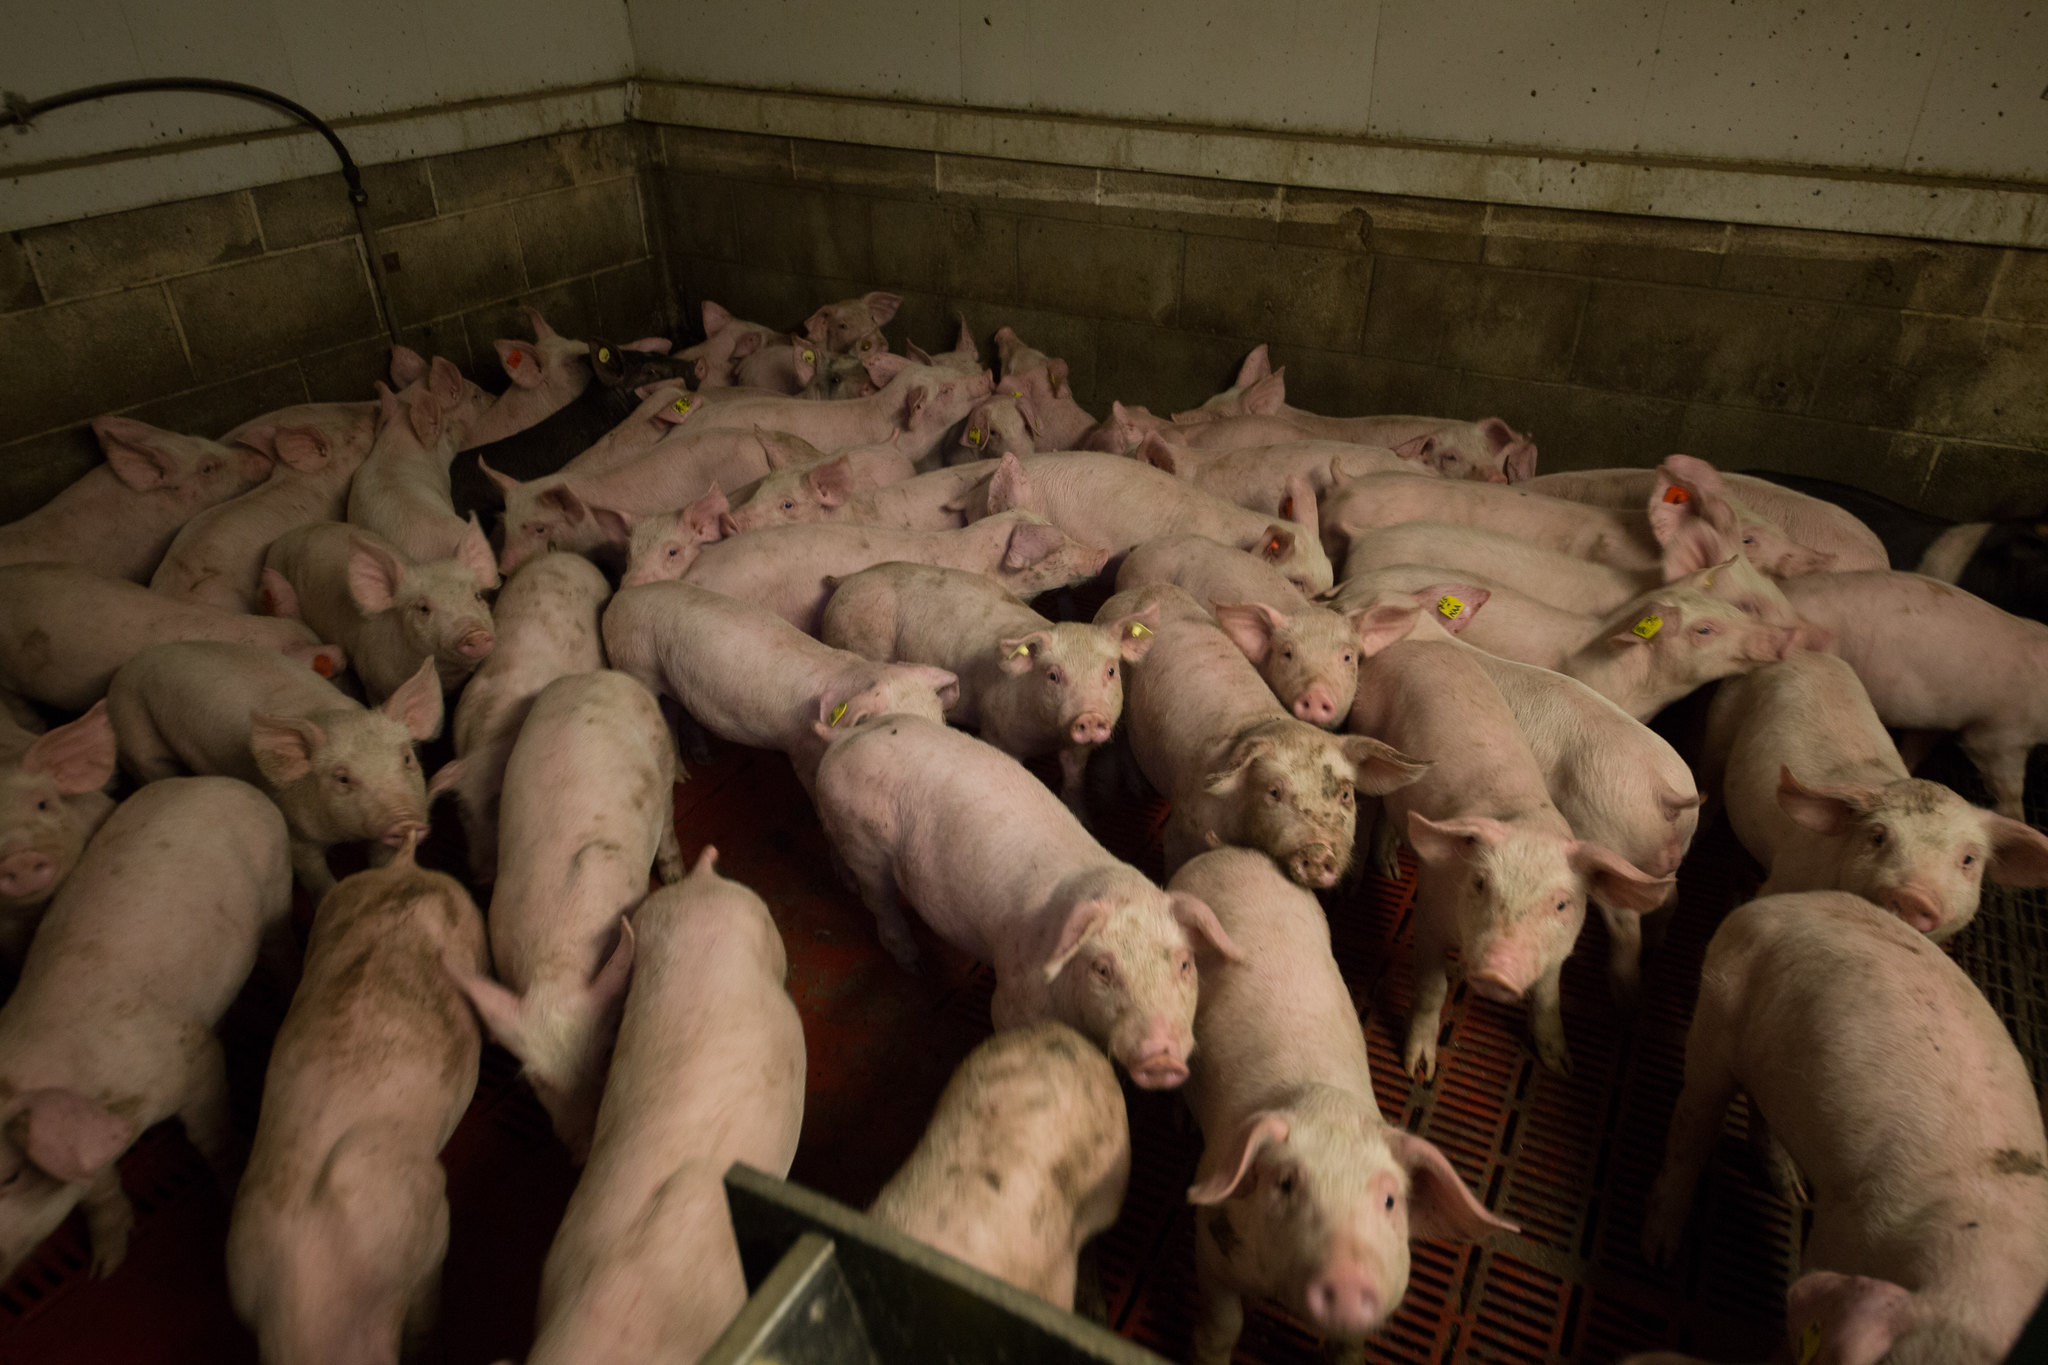 Pigs packed in an animal farm.